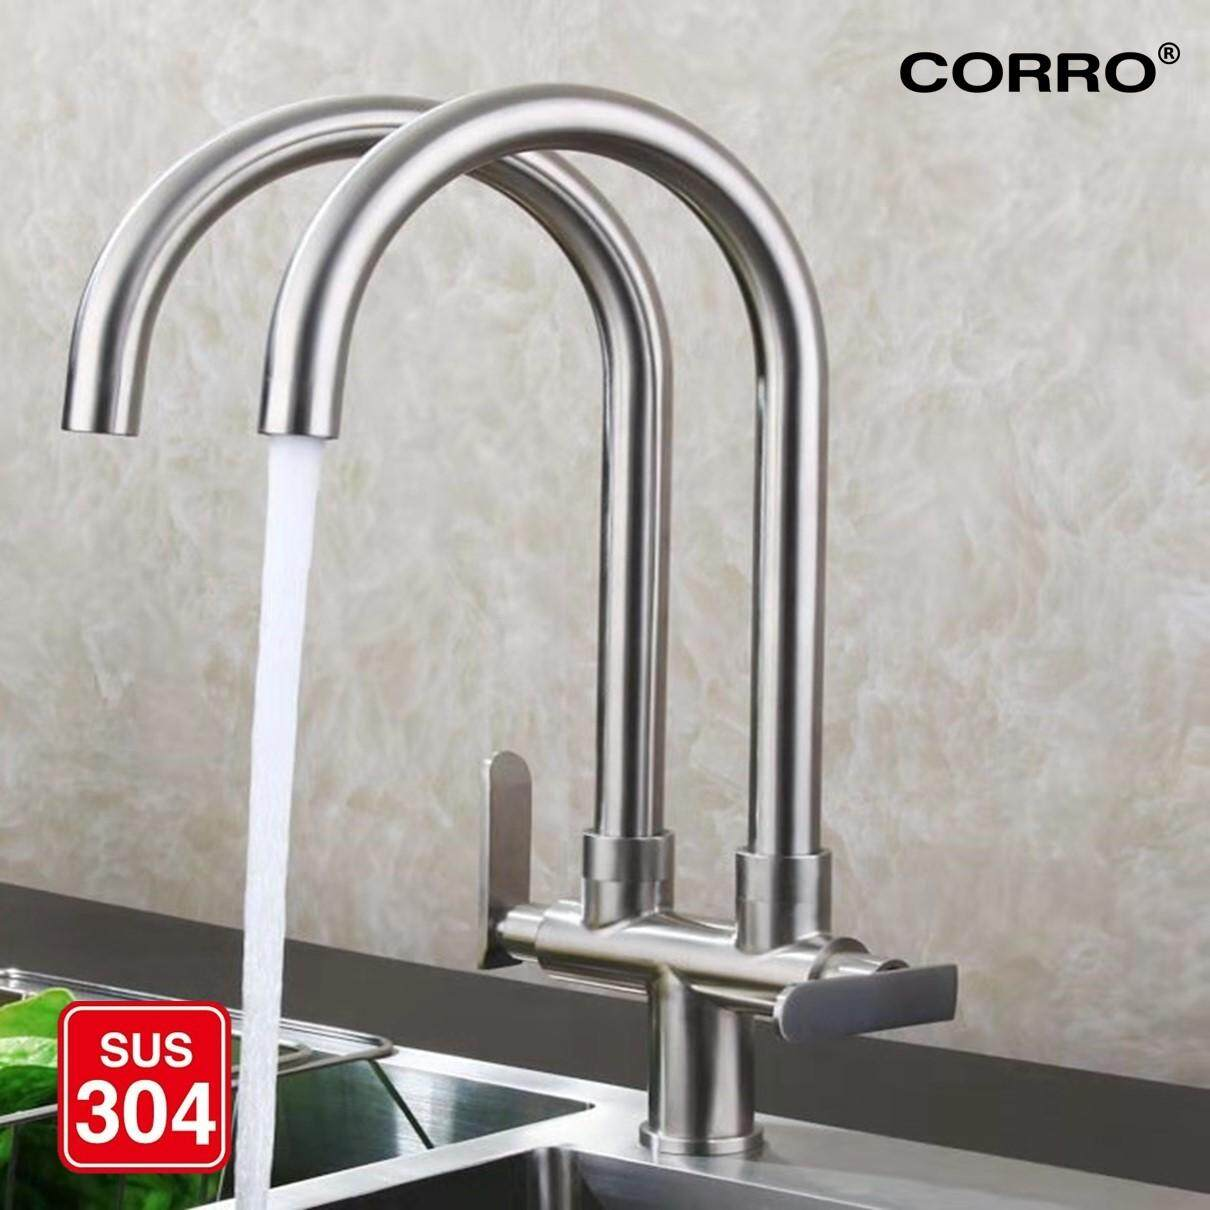 CORRO SUS304 Stainless Steel Double Twin Hose Kitchen Faucet Pillar Sink Tap